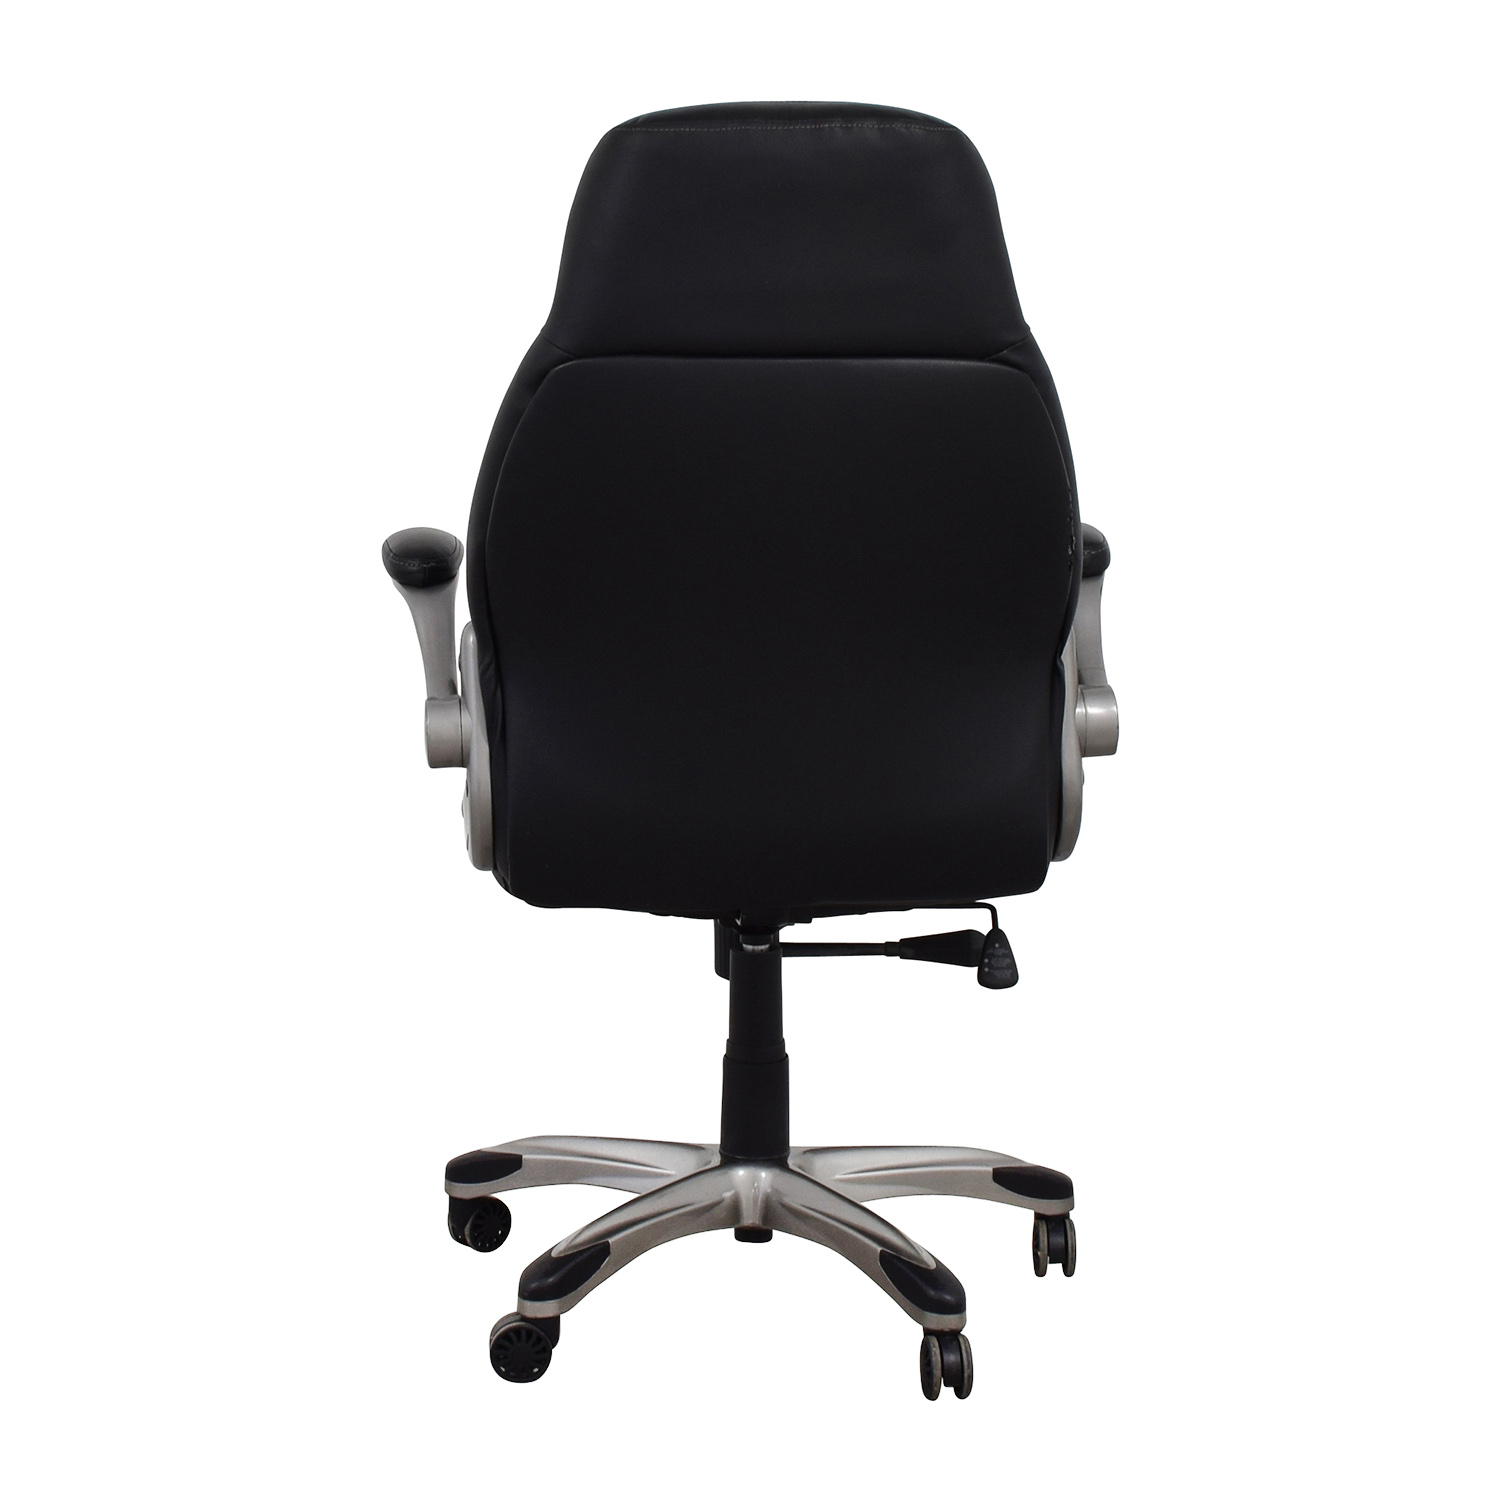 Staples Staples Torrent High-Back Executive Chair in Black coupon